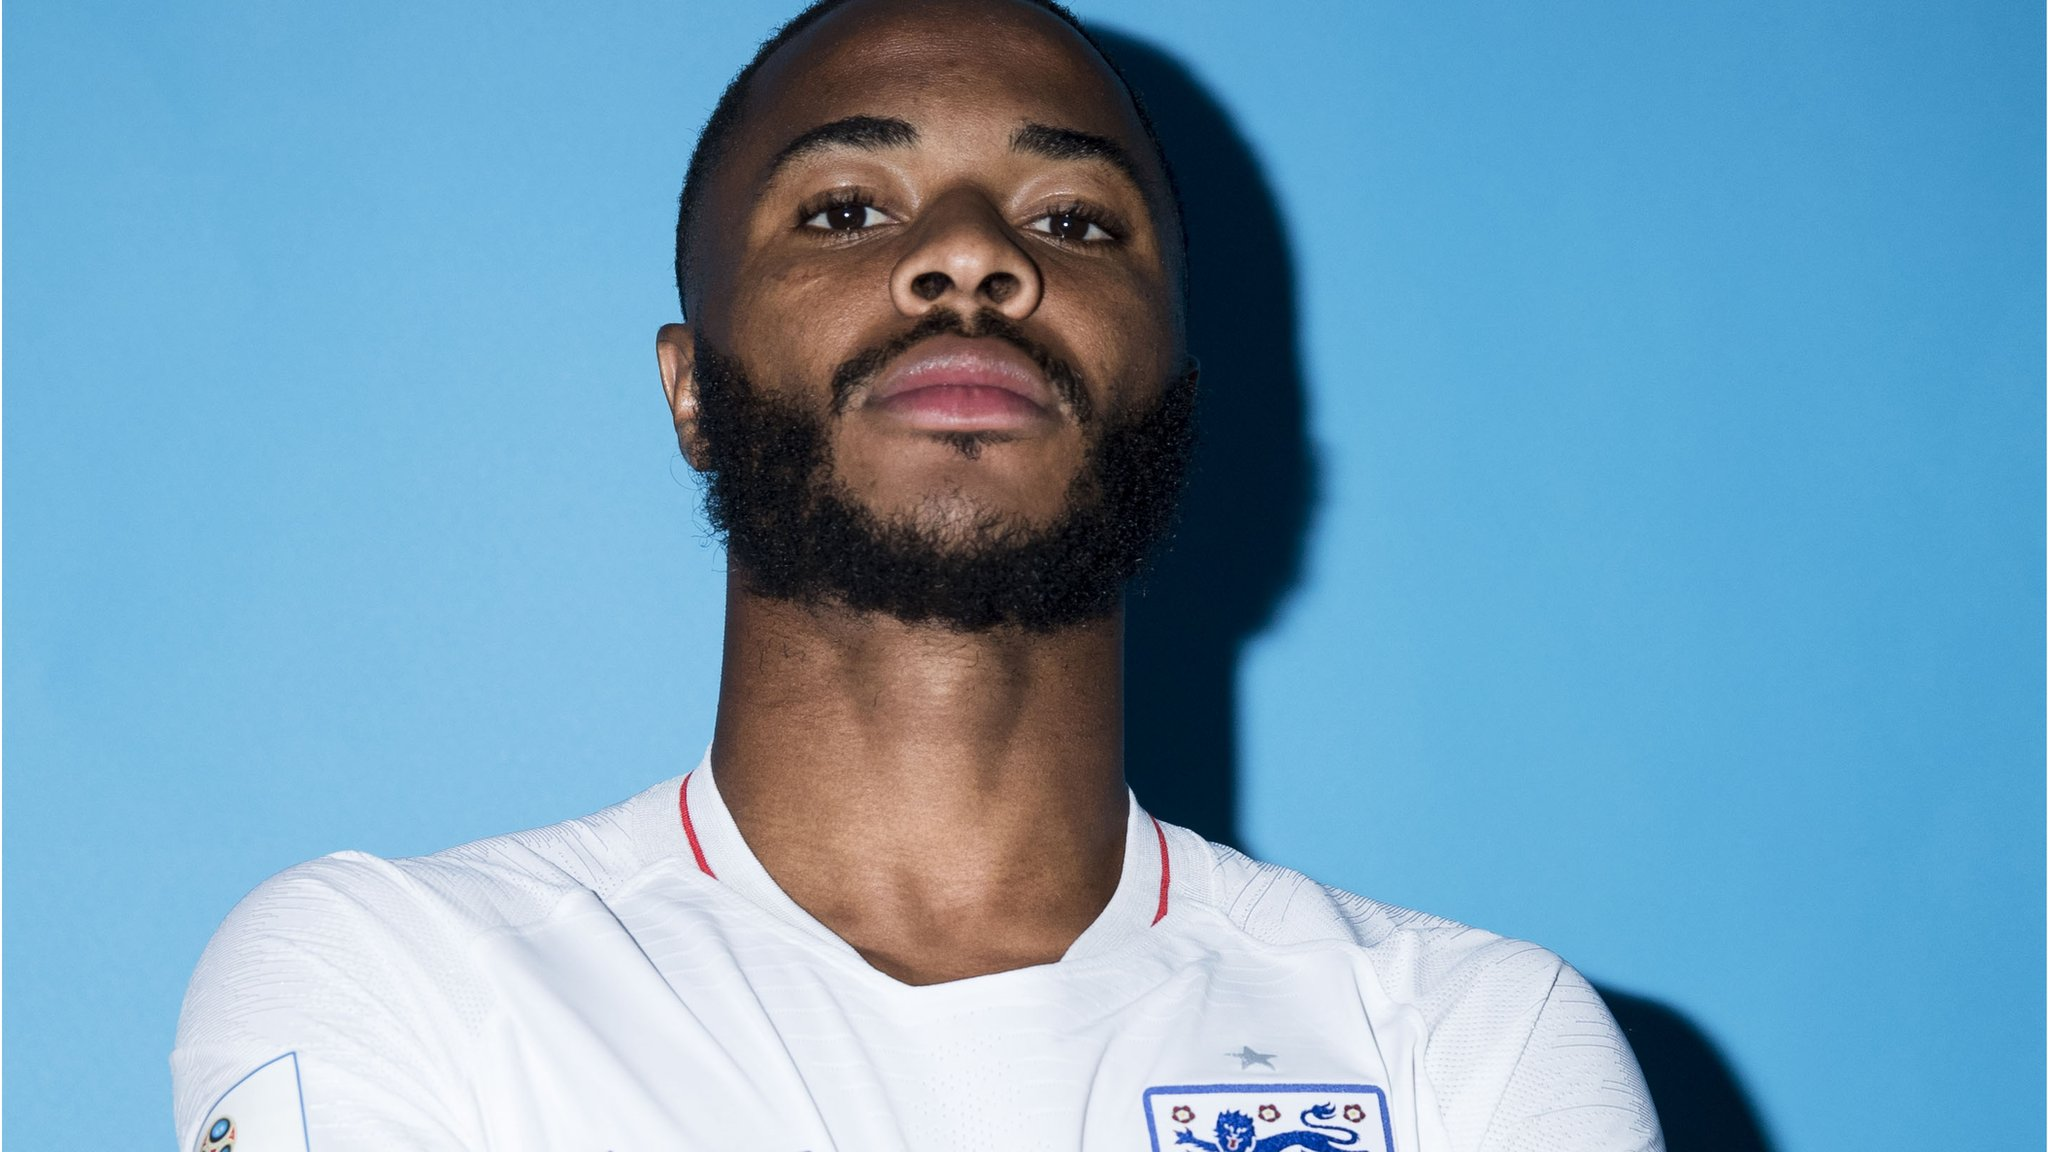 World Cup: England's Raheem Sterling says criticism of lifestyle is no concern